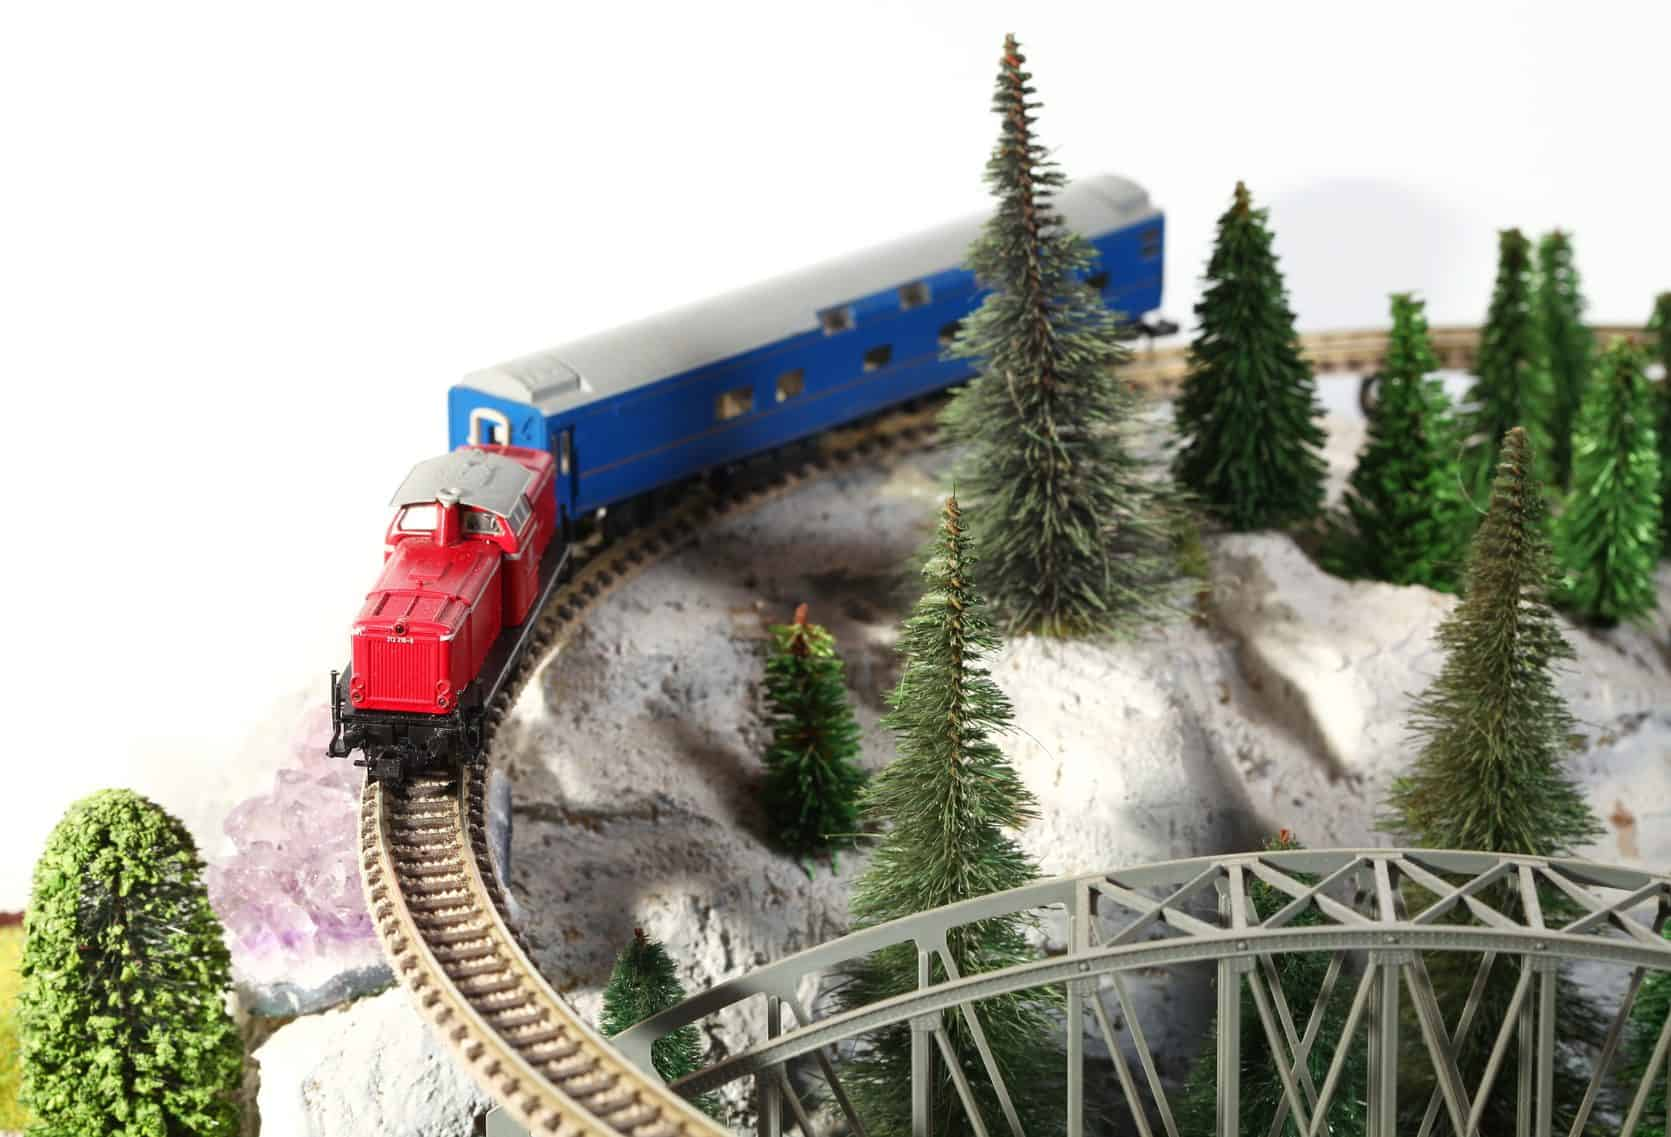 How to Make Your Own Trees for Model Railroad | Toy Train Center